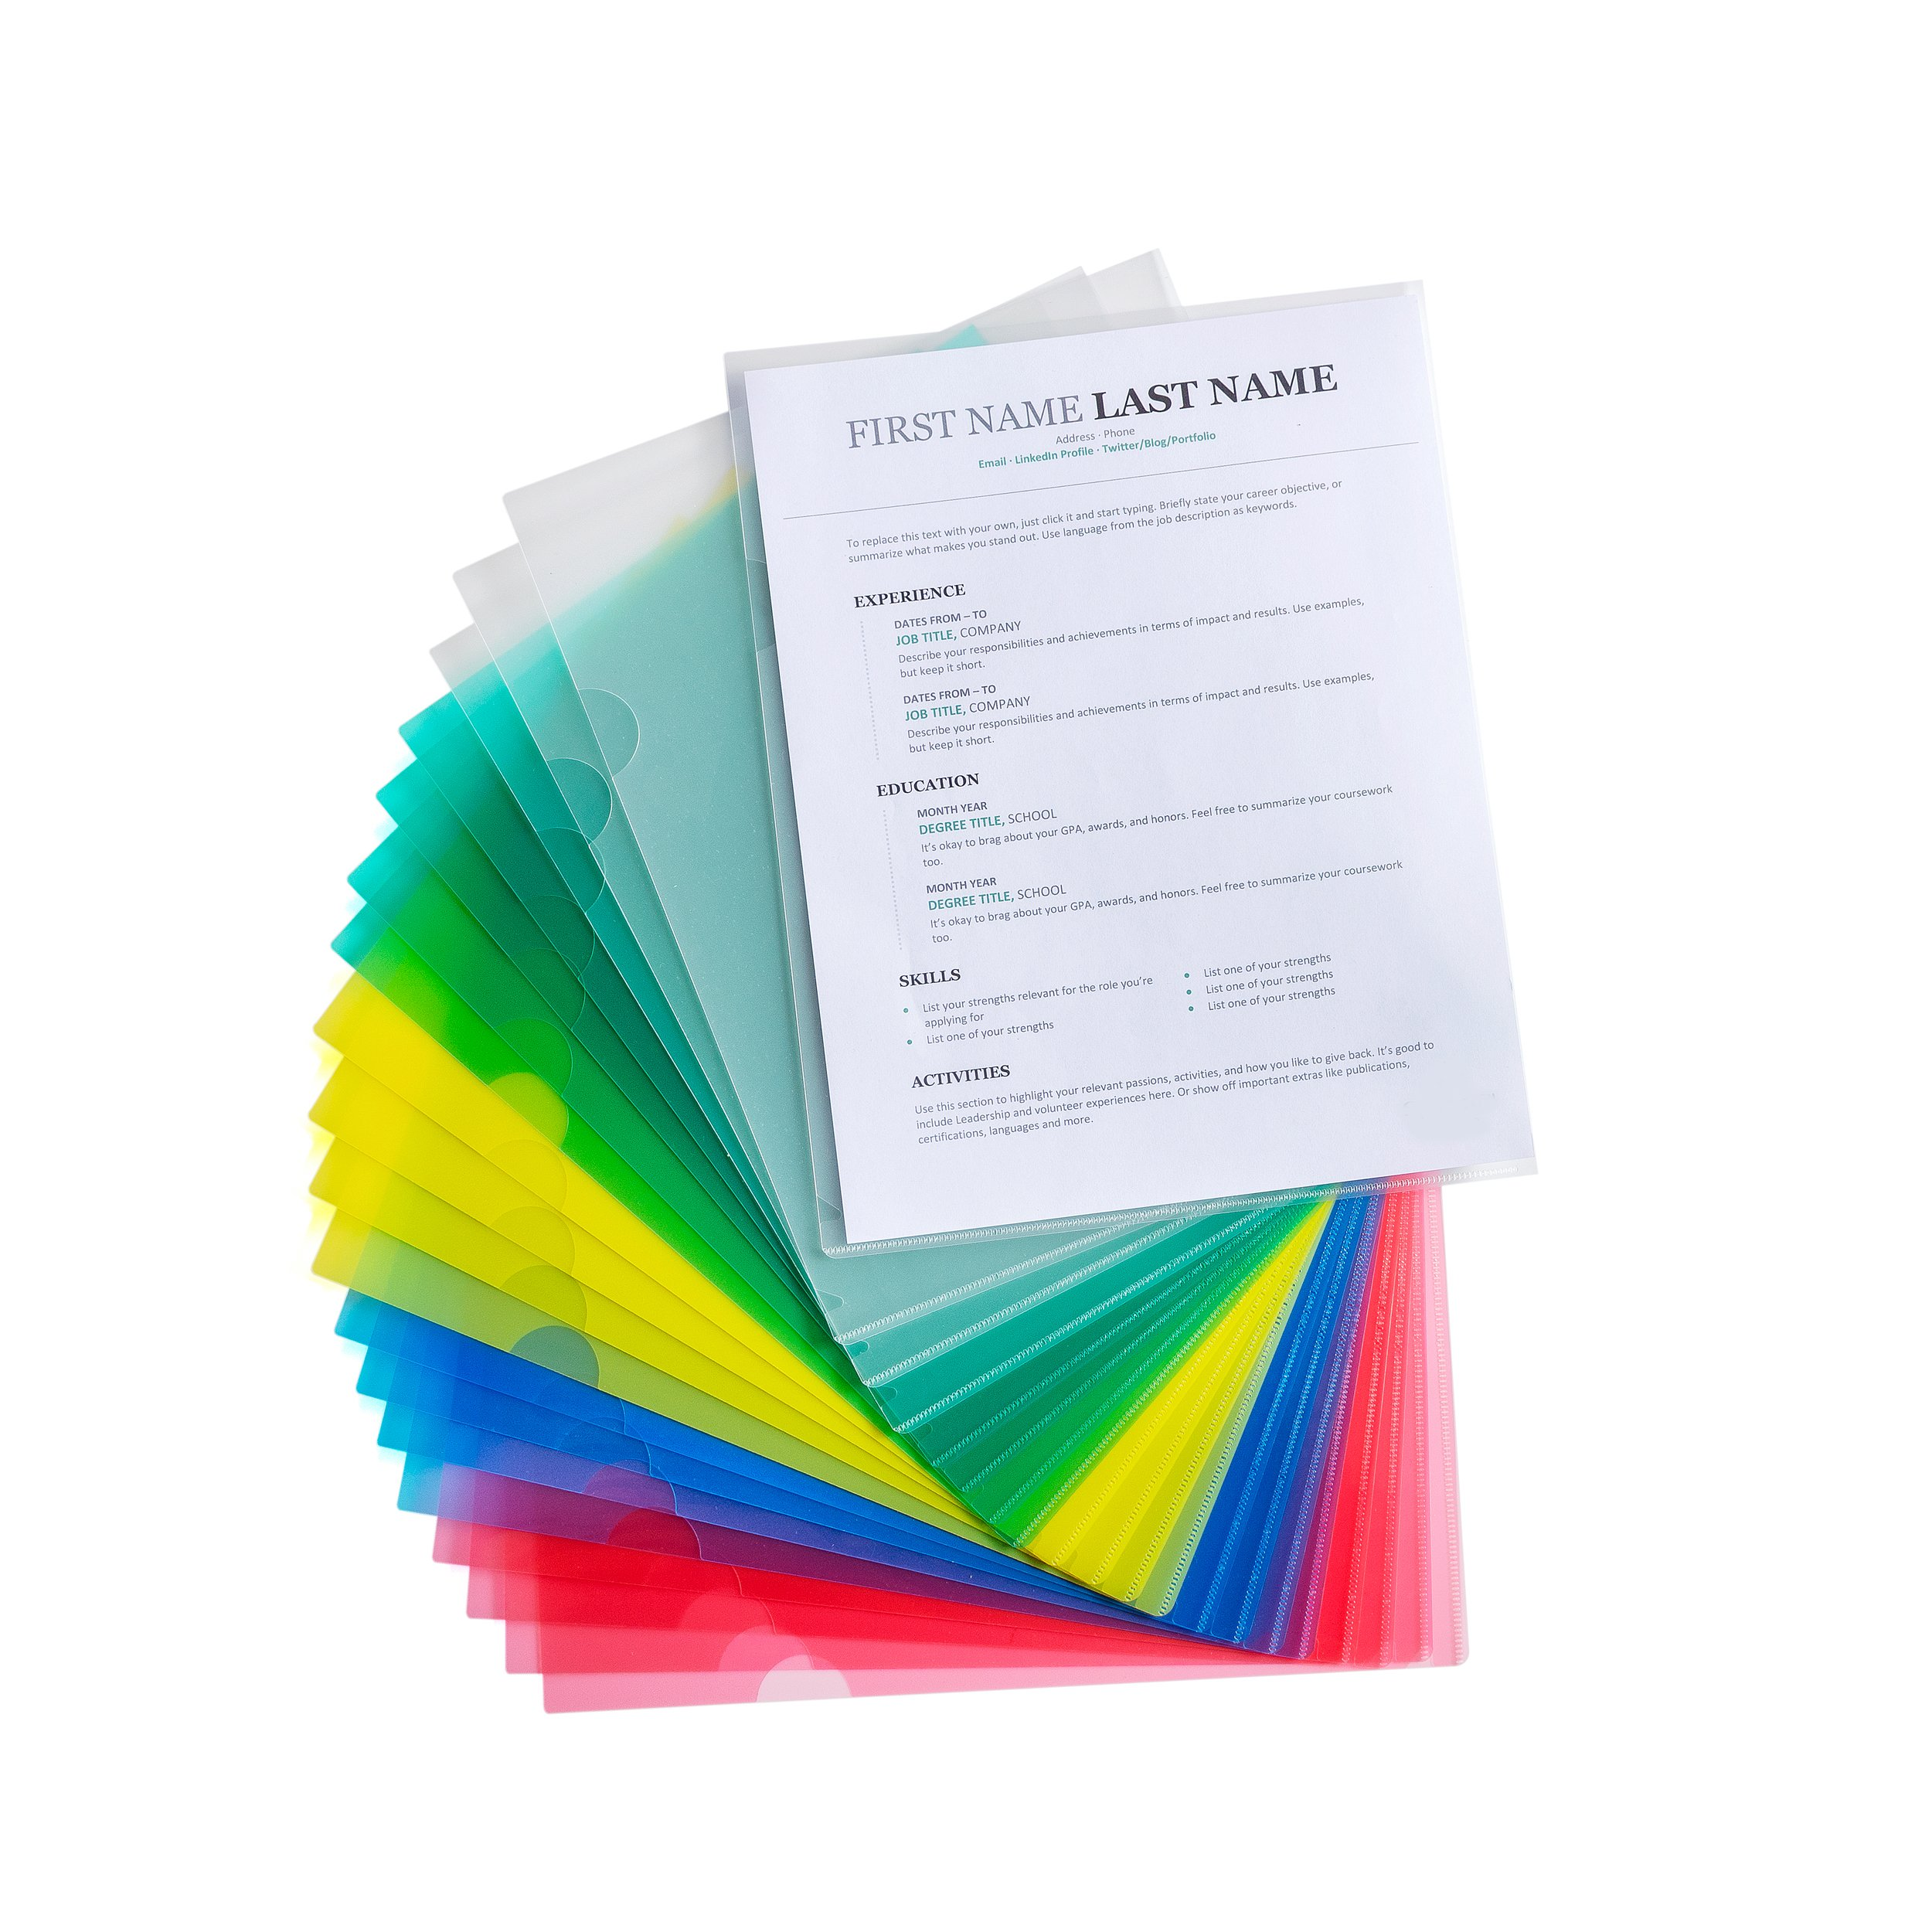 Document Folders, Poly File Holders - Assorted Colors - Transparent - US Letter/A4 Size - 20 Sheet Capacity - Water-Resistant, Organize and Protect Important Documents - 20-Pack